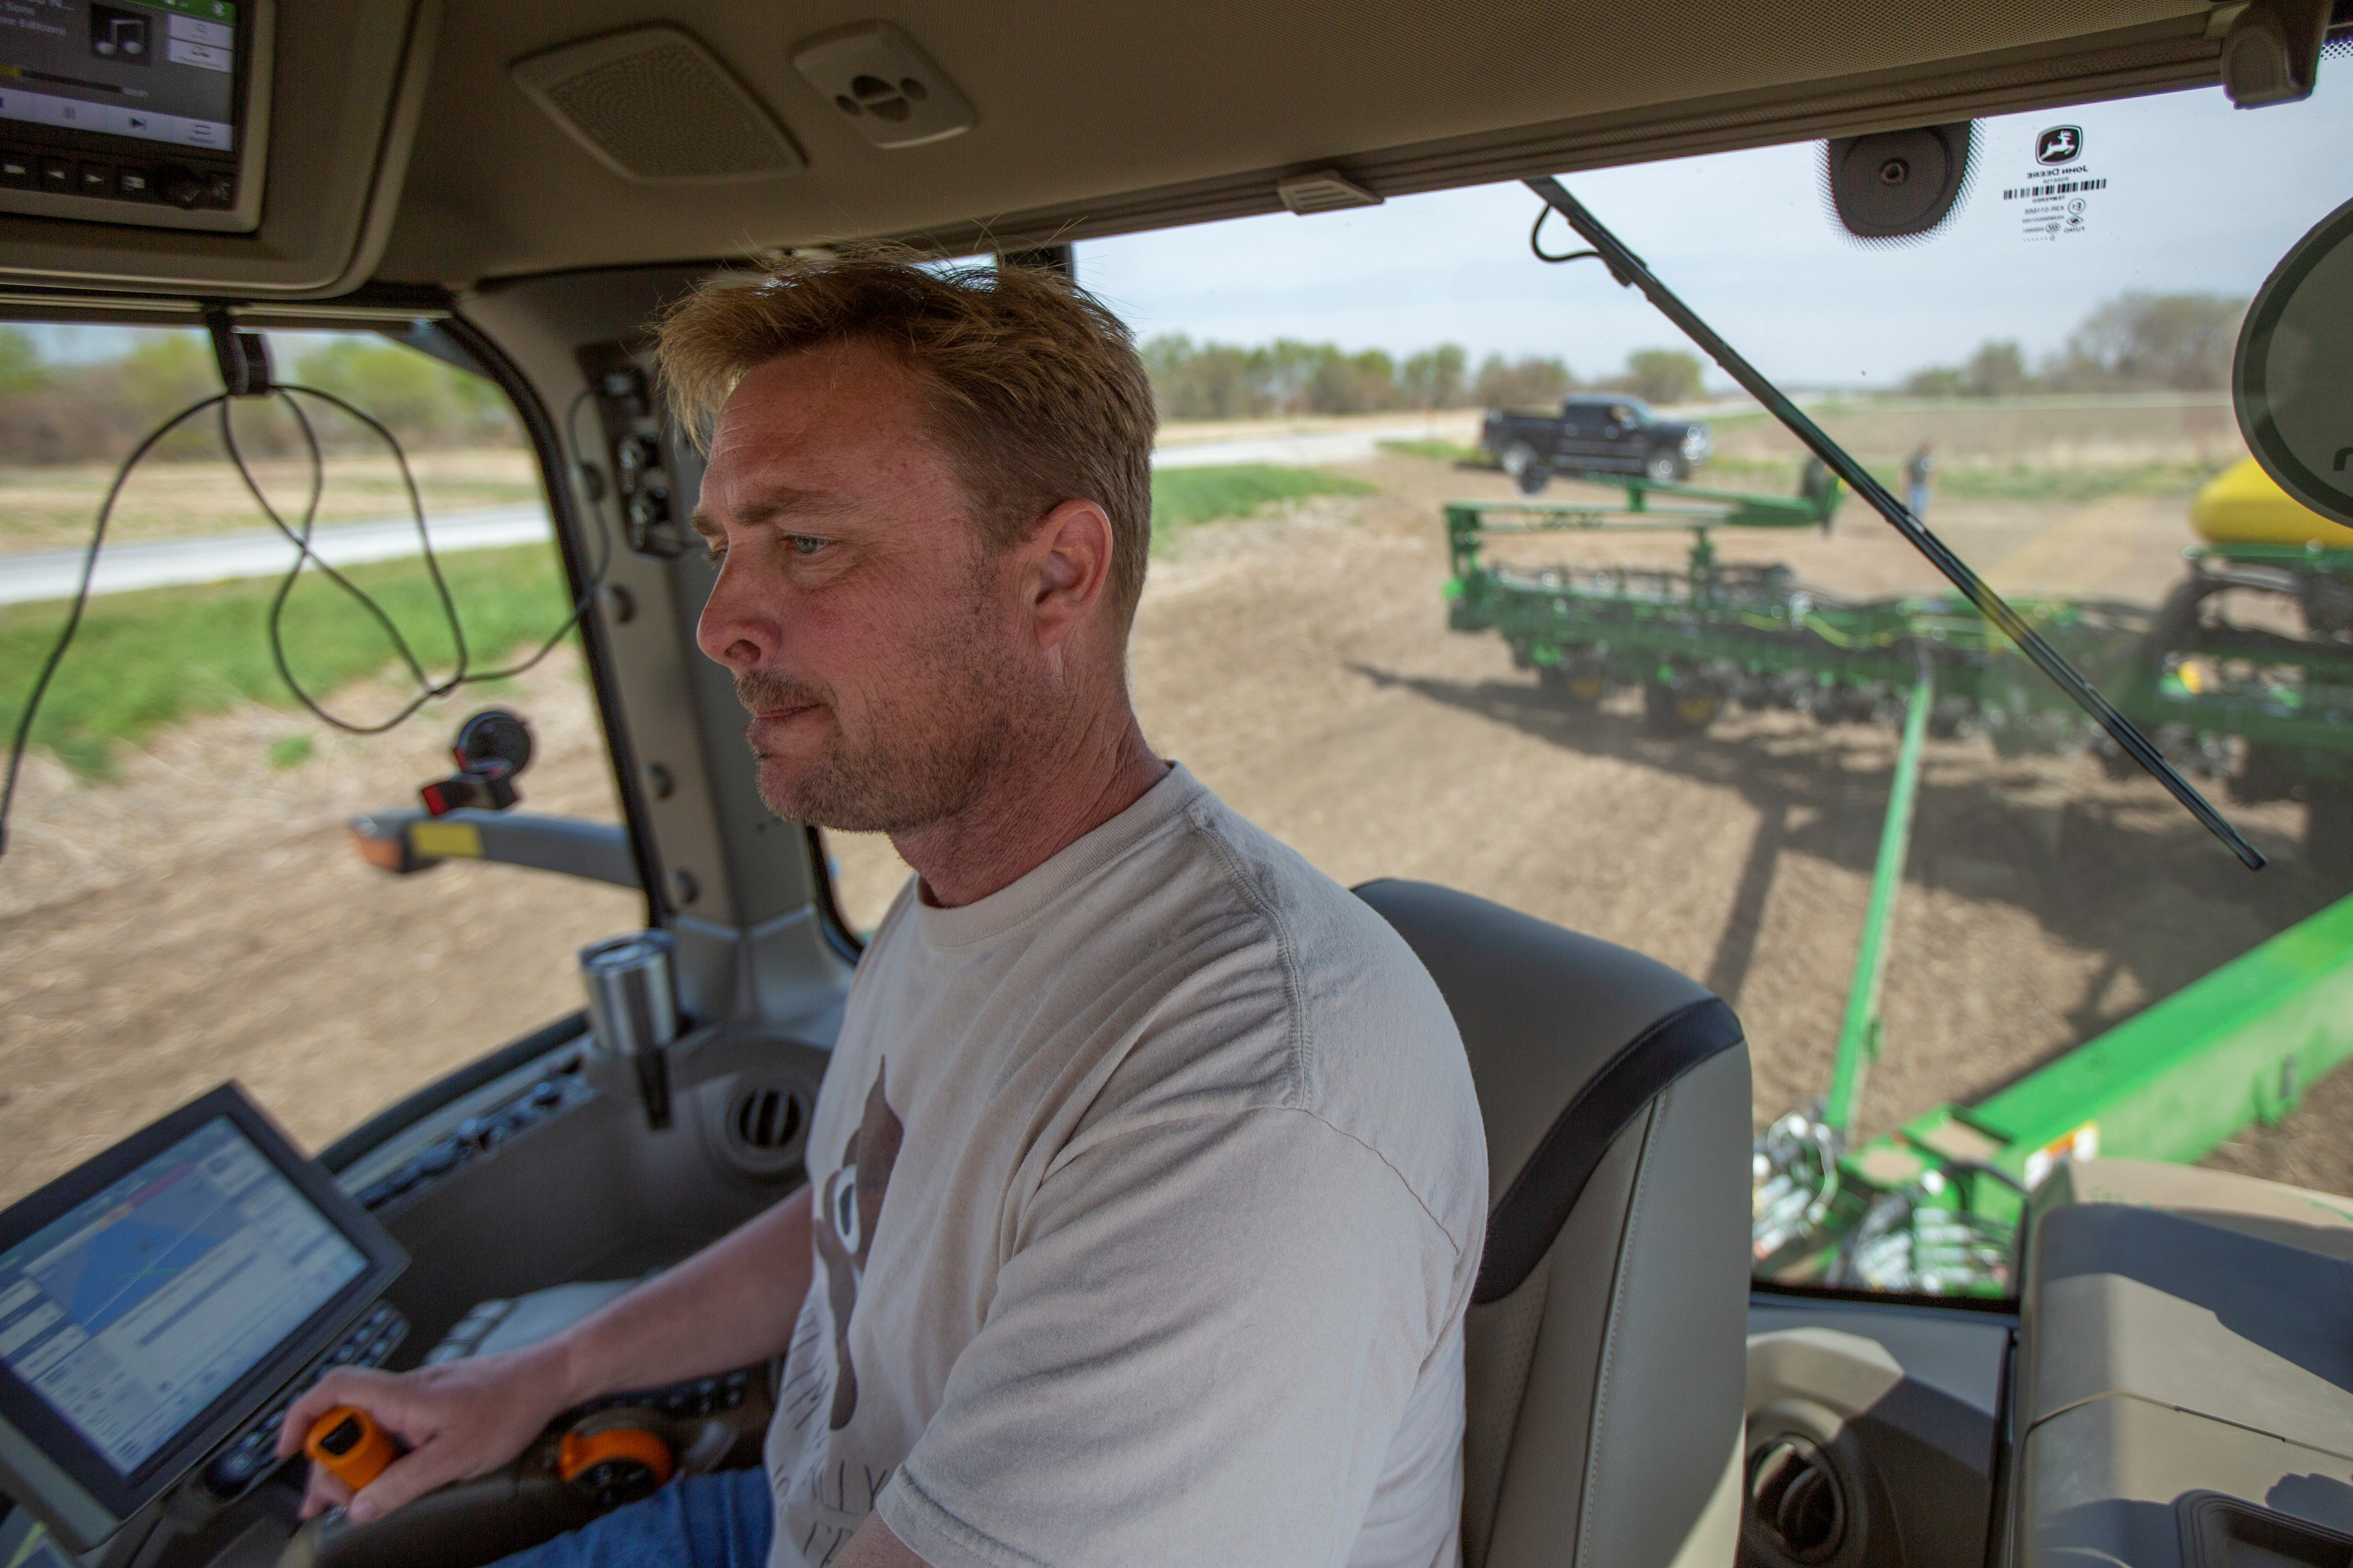 Chris Hays drives a new tractor and planter during spring planting at their farm in Malvern, Iowa, U.S., April 27, 2021. REUTERS/Rachel Mummey